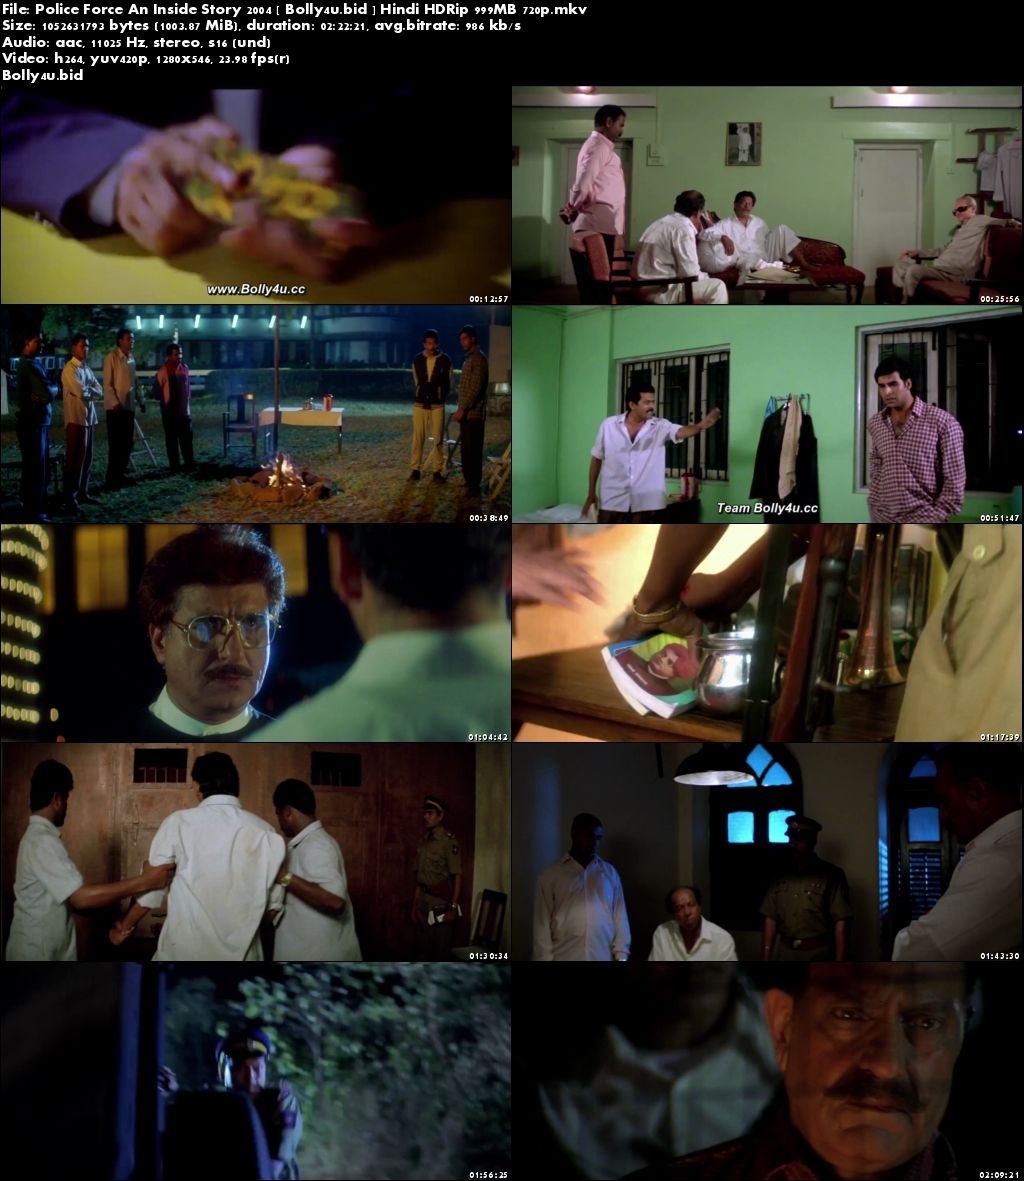 Police Force An Inside Story 2004 HDRip 999MB Hindi 720p Download